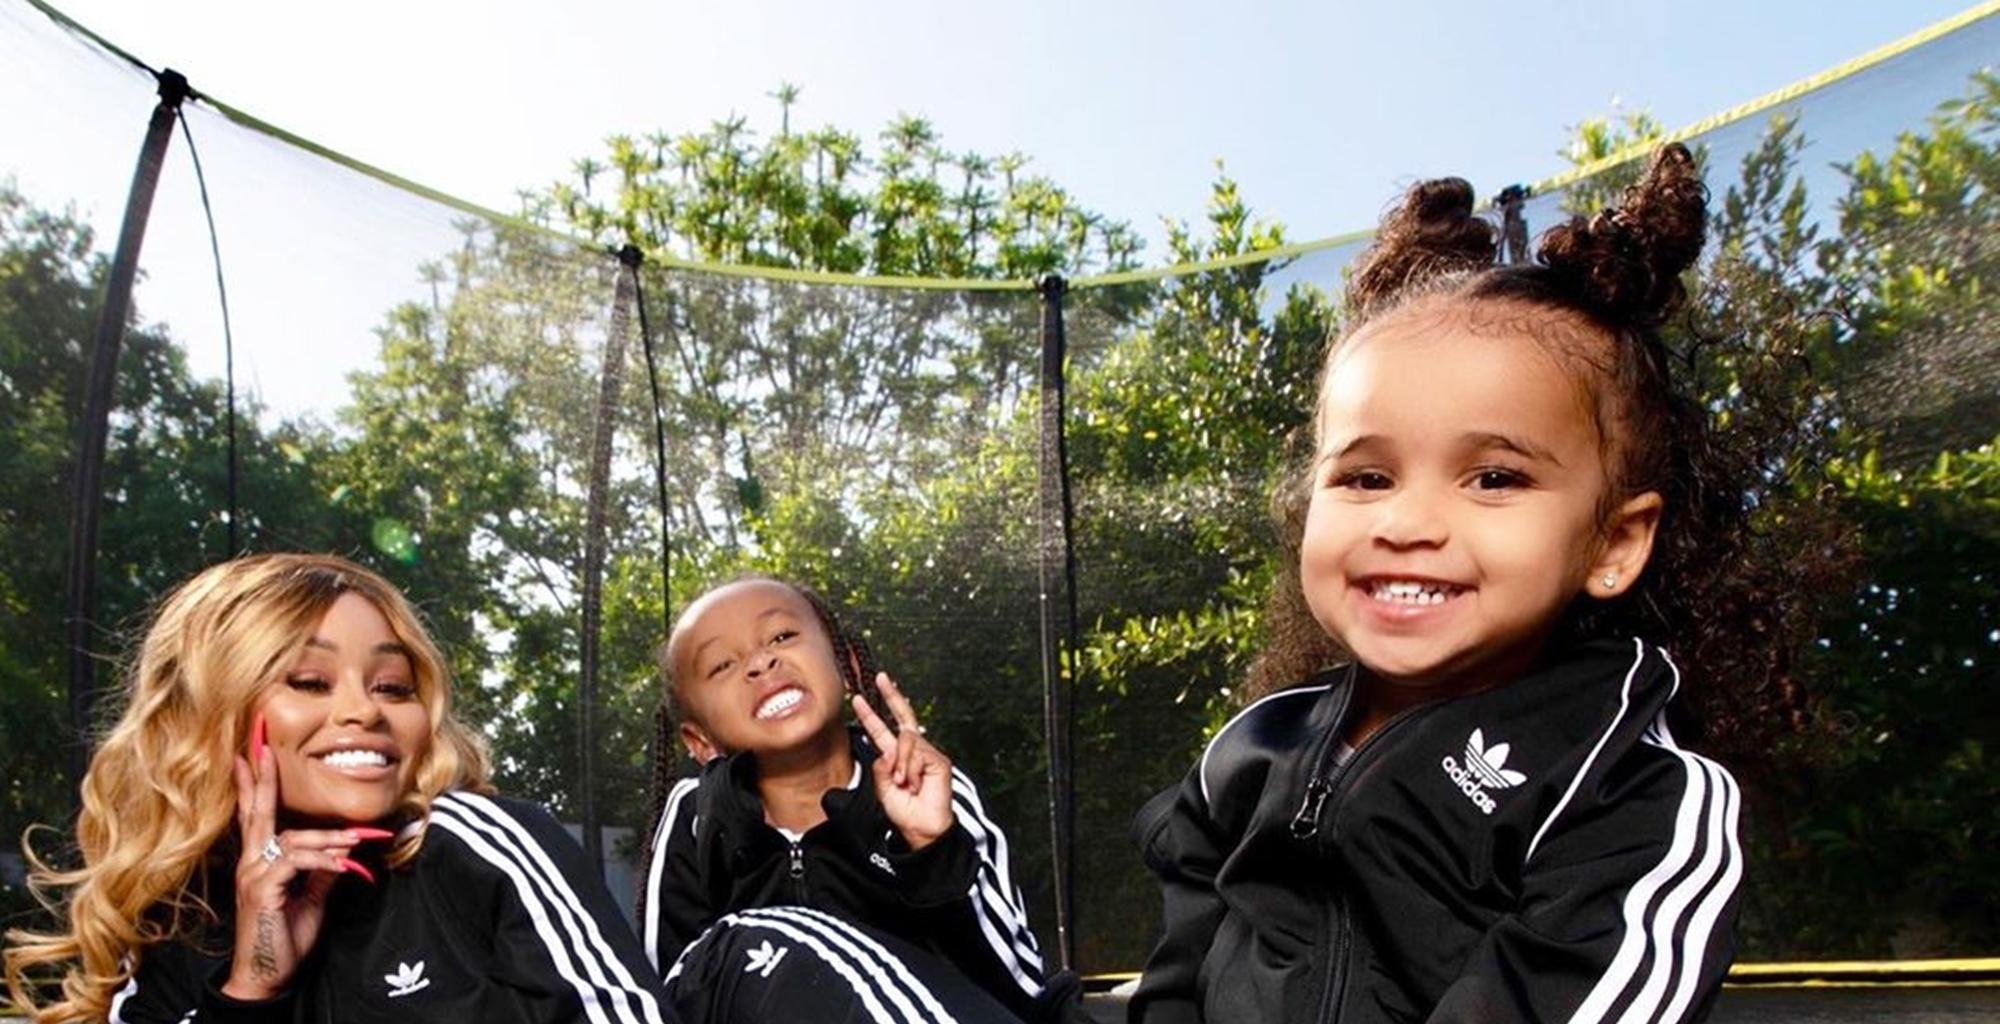 Blac Chyna Shares Sweet Family Portrait And Explains How She Is Breaking Generational Curses -- Is Robert Kardashian's Ex A Whole New Person?